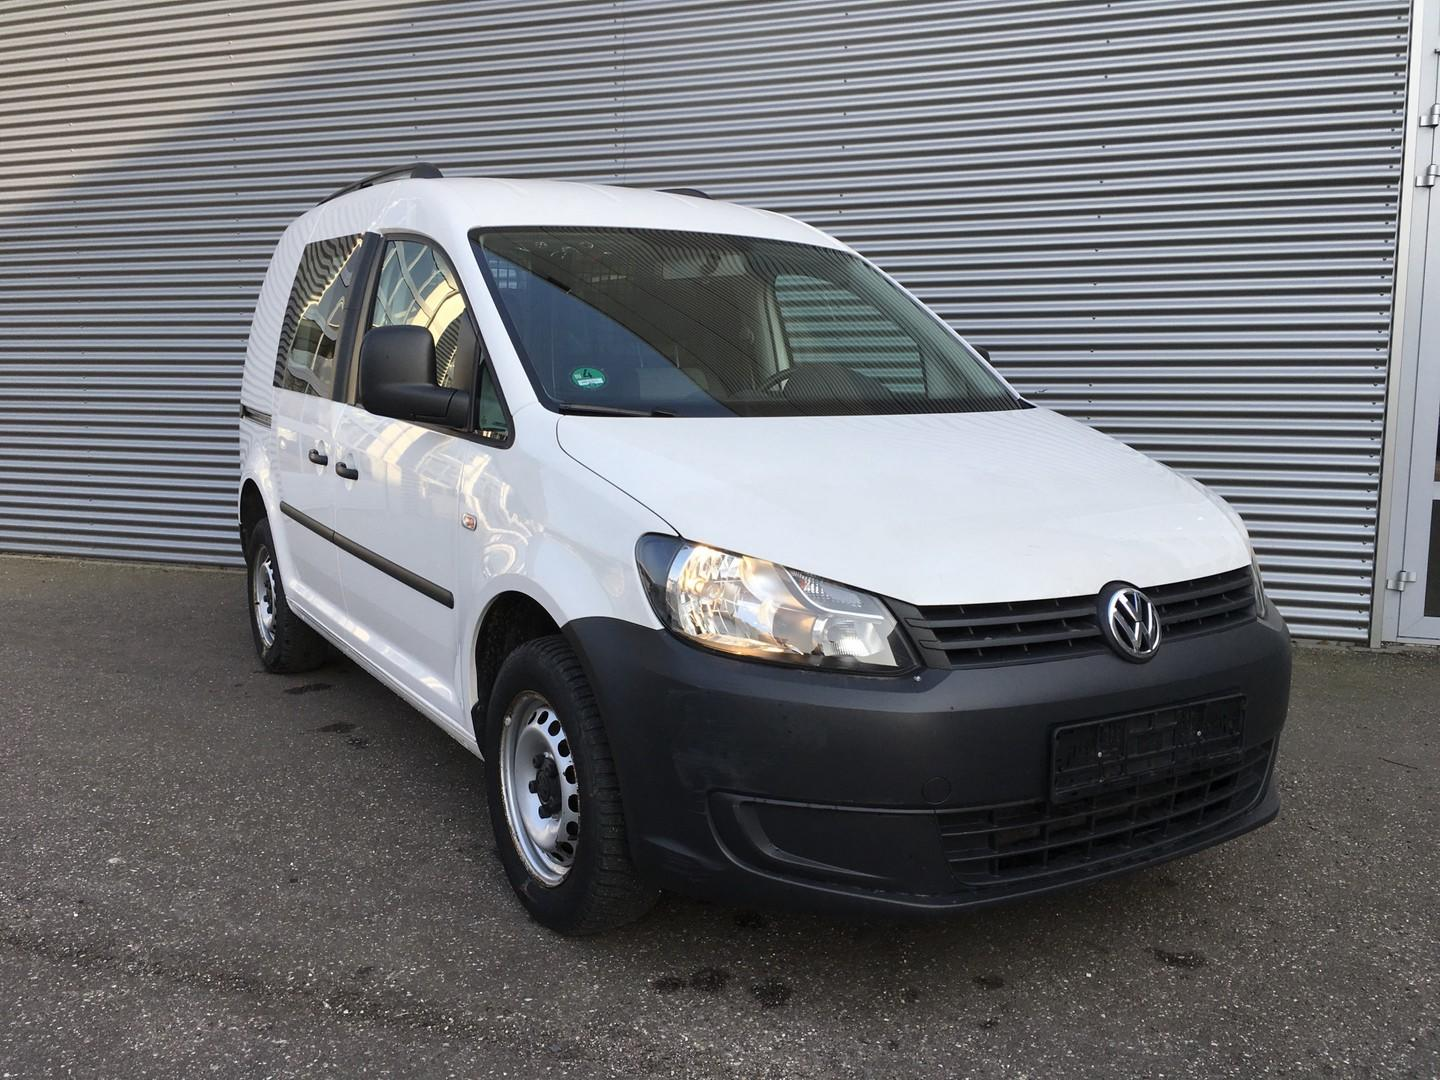 Volkswagen Caddy 2.0 tdi 111 pk 4motion 4wd/4x4/inrichting/airco/4-motion